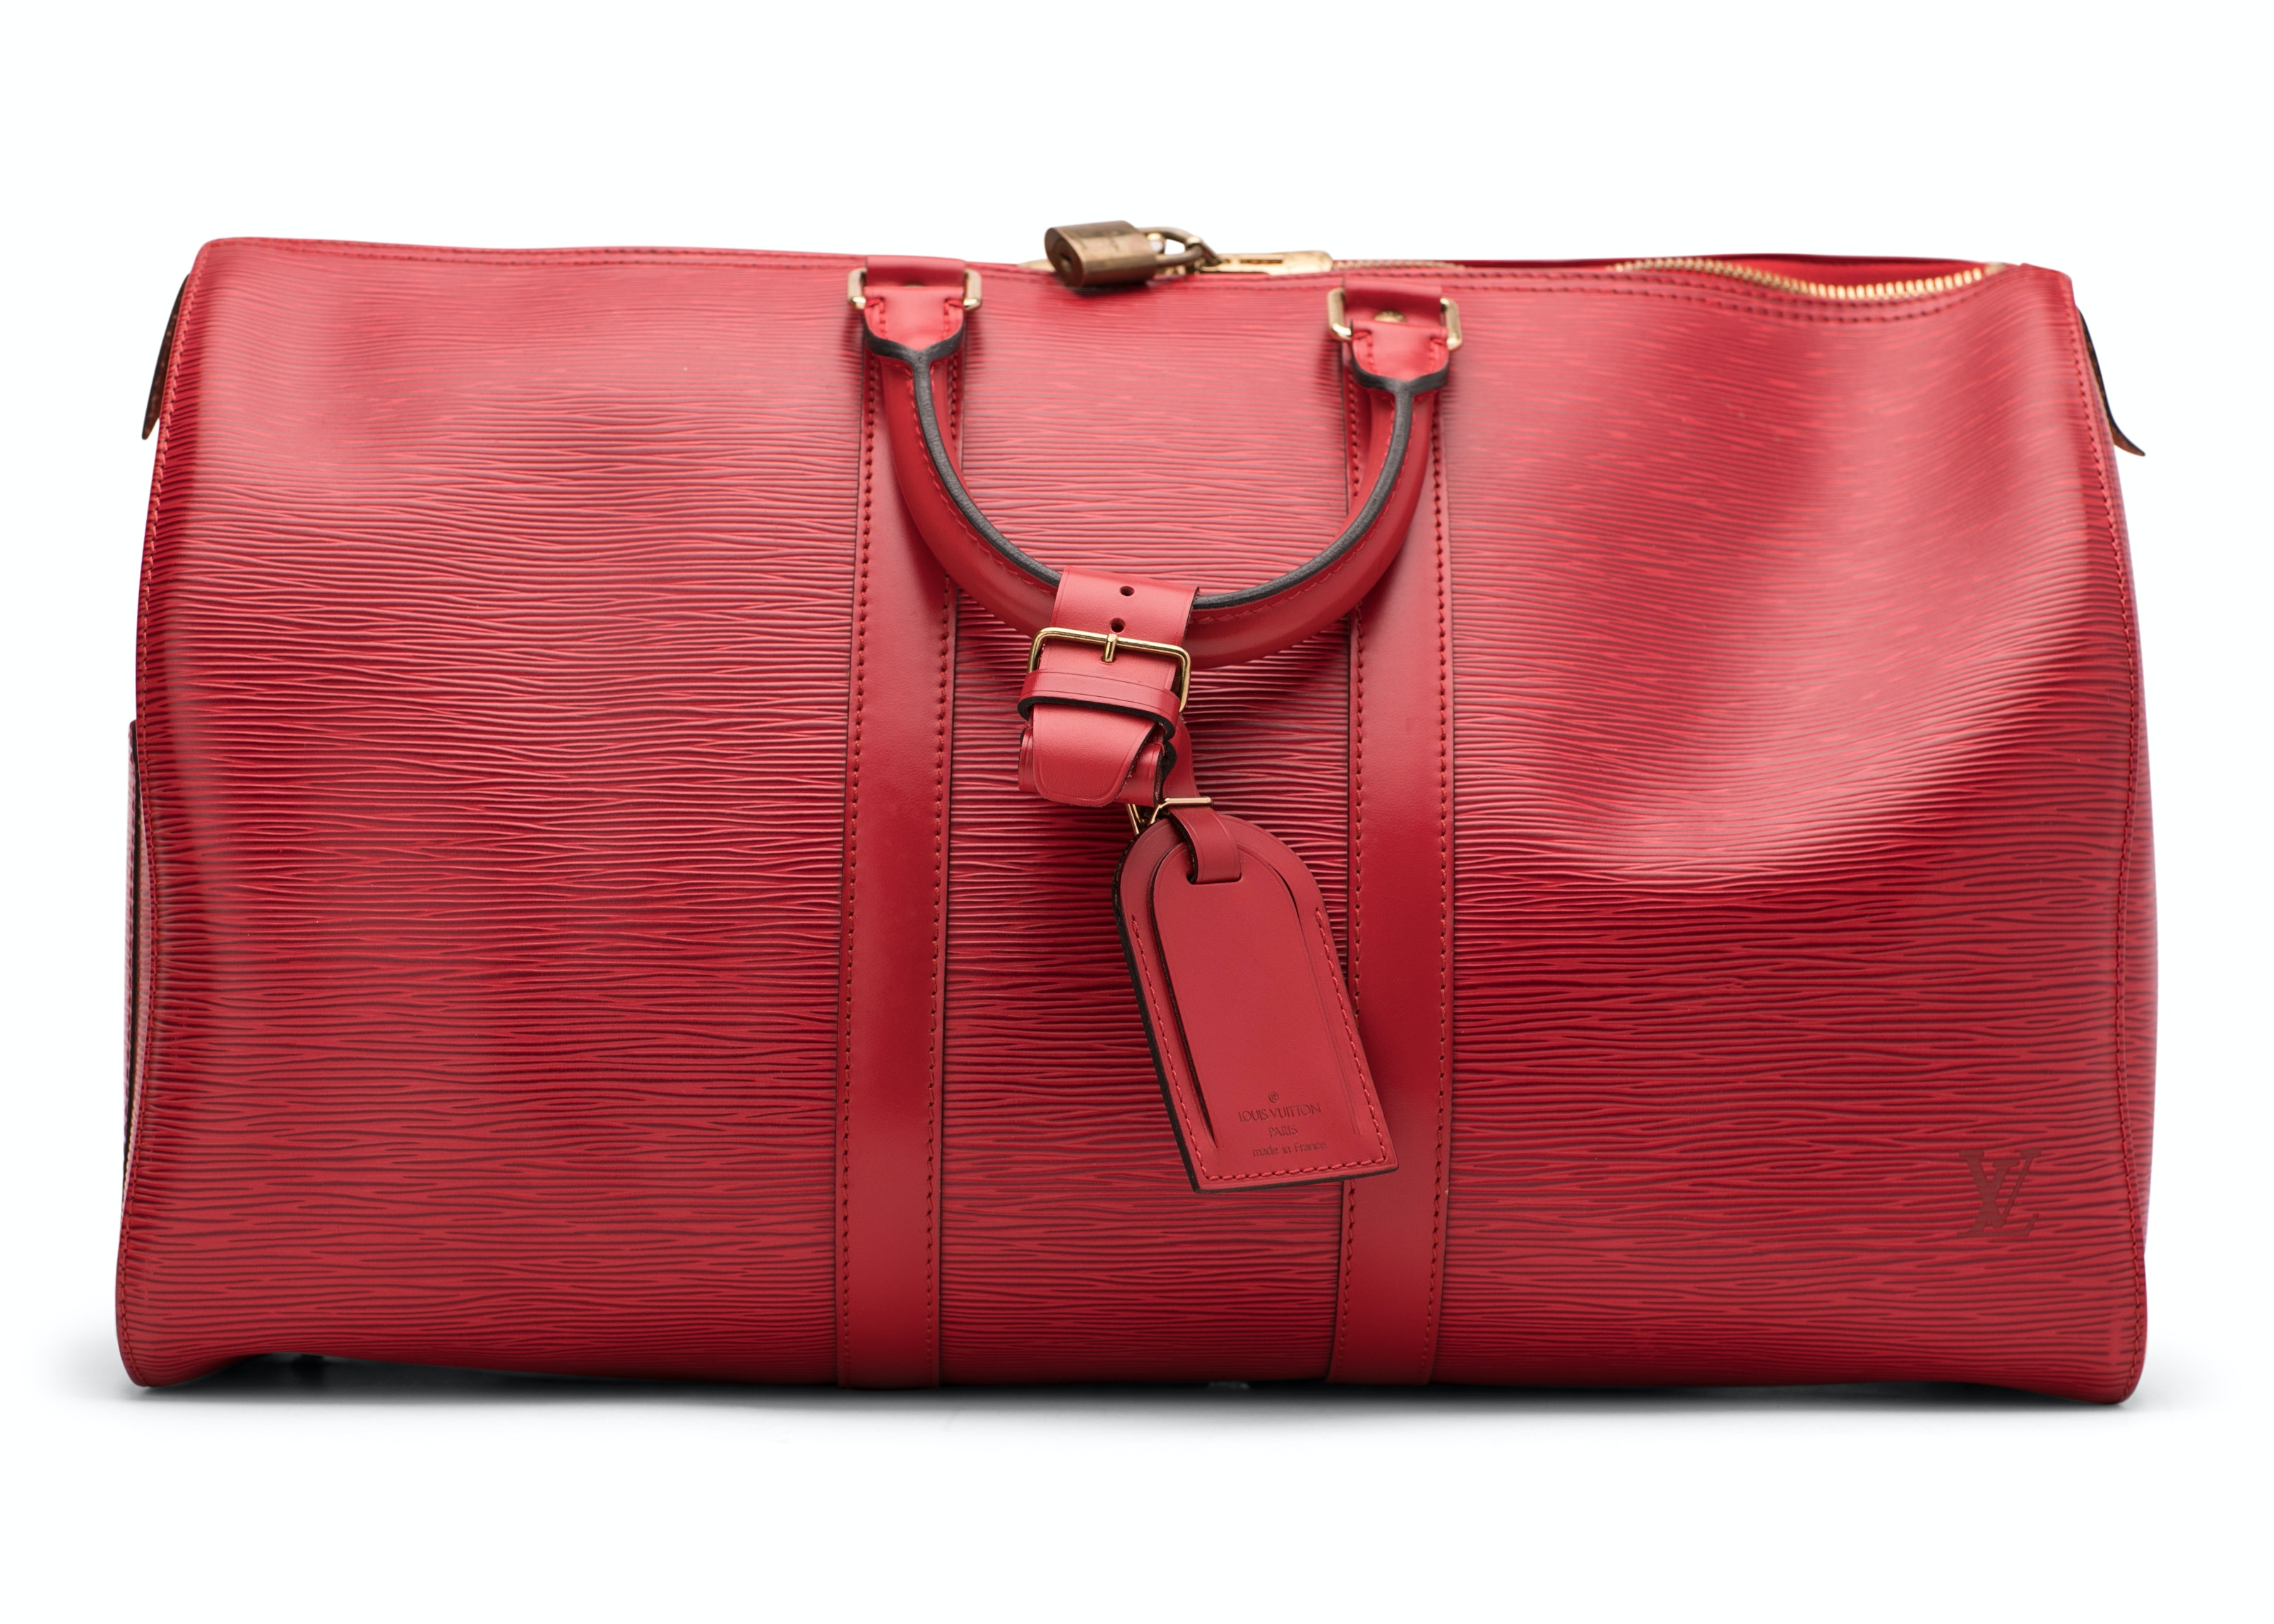 Louis Vuitton Keepall Epi 50 Red